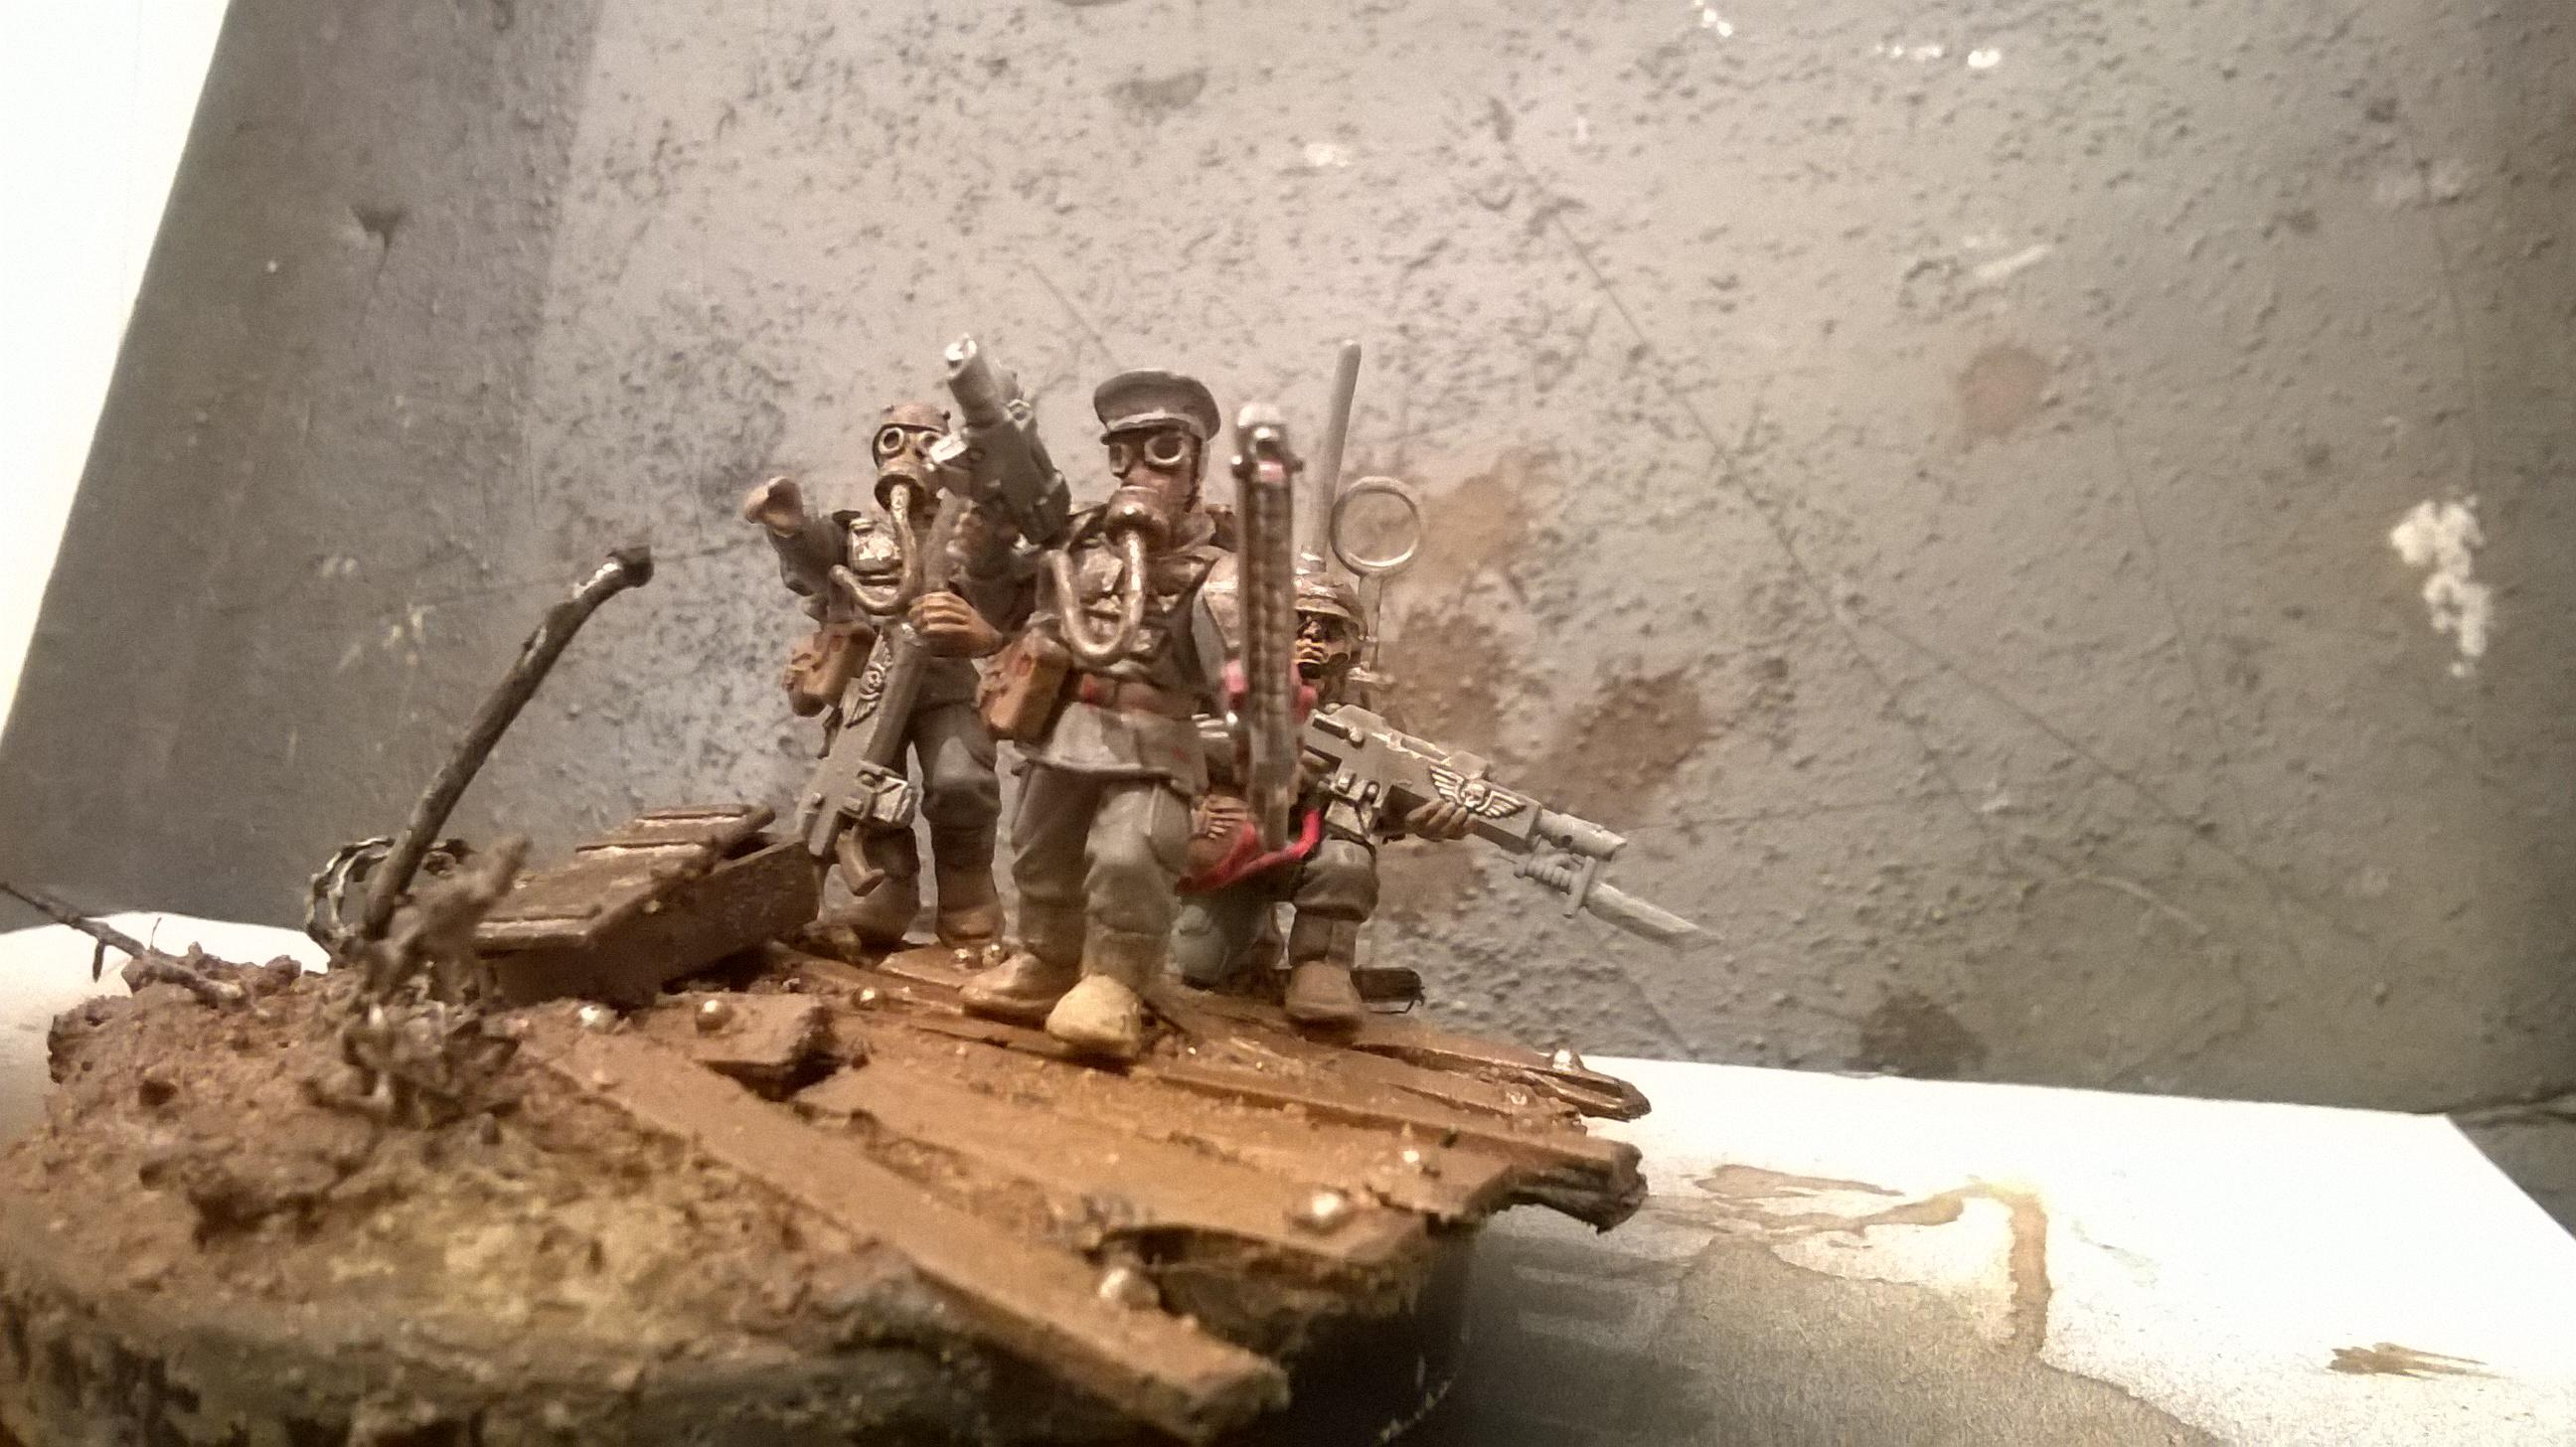 Battle, Build, Built, Chainsword, Death Korp, Death Korps of Krieg, Diorama, Dirt, Gas Masks, Guard, Imperial, Kitbash, Lasgun, Mud, Pigments, Rebreathers, Rust, Scratch, Trench, Trooper